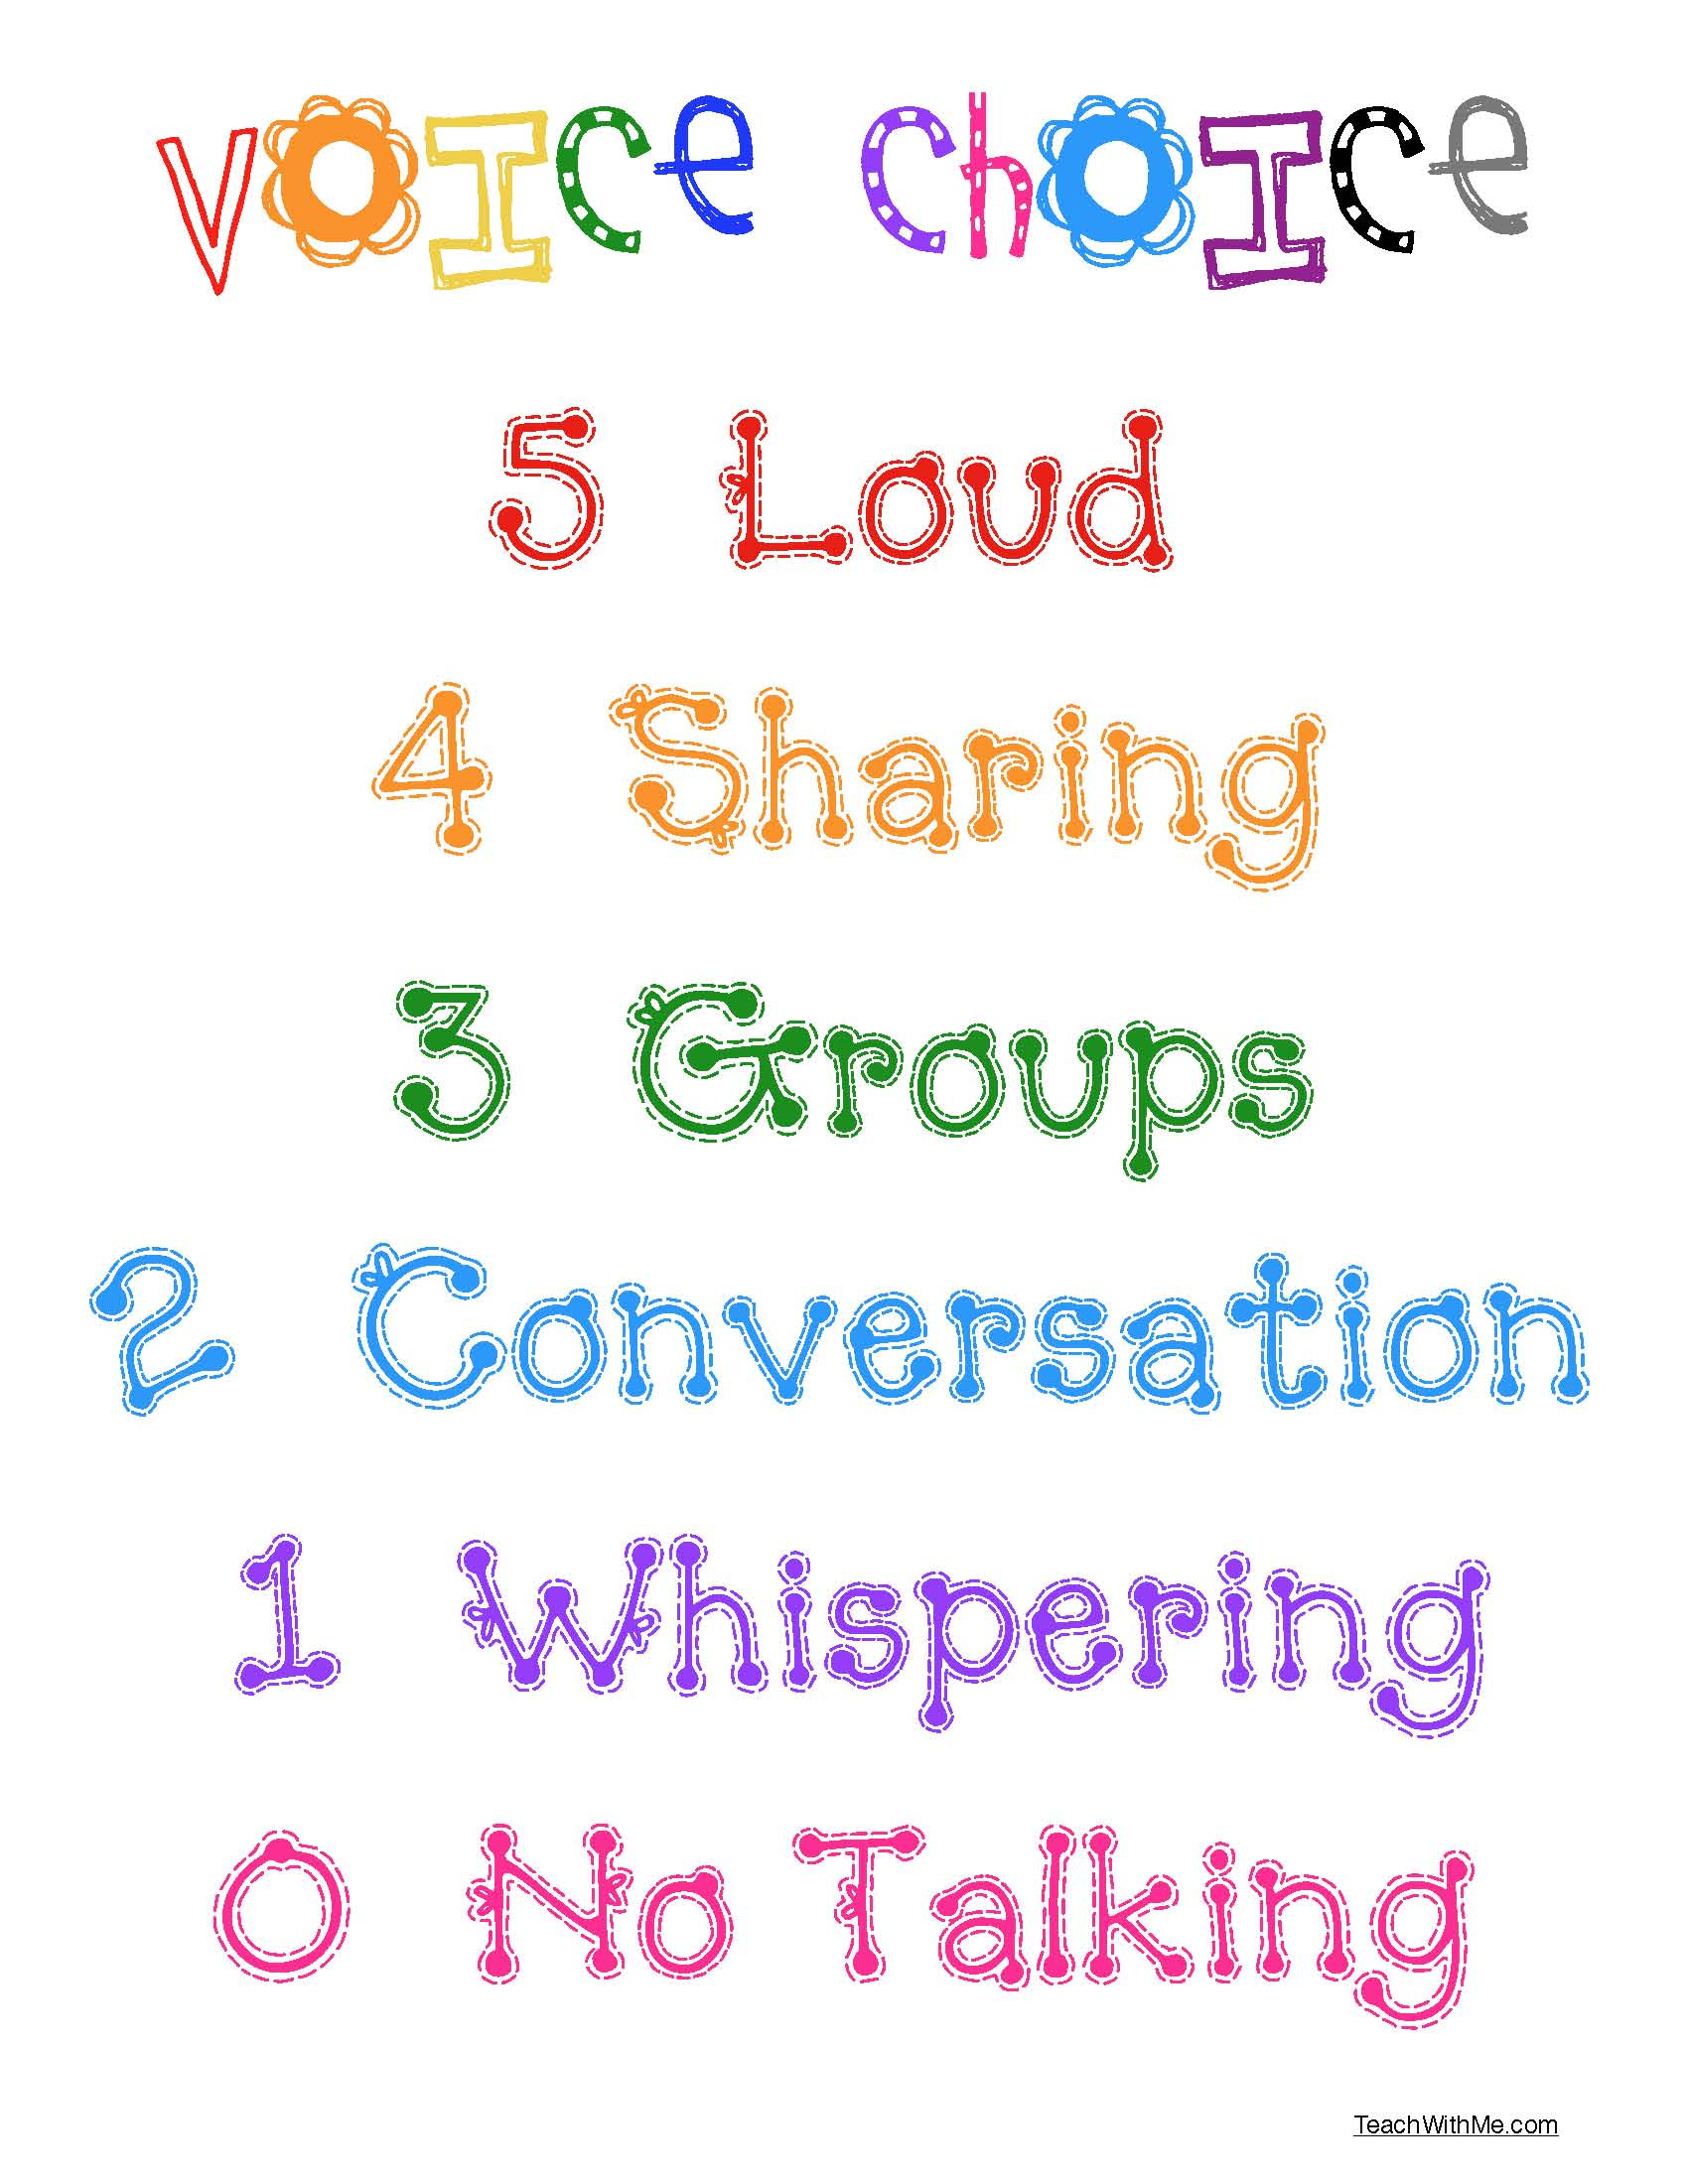 classroom management tips, classroom management ideas, voice level posters, behavior modification techniques, tips for classroom management, voice control in the classroom, classroom voice volume